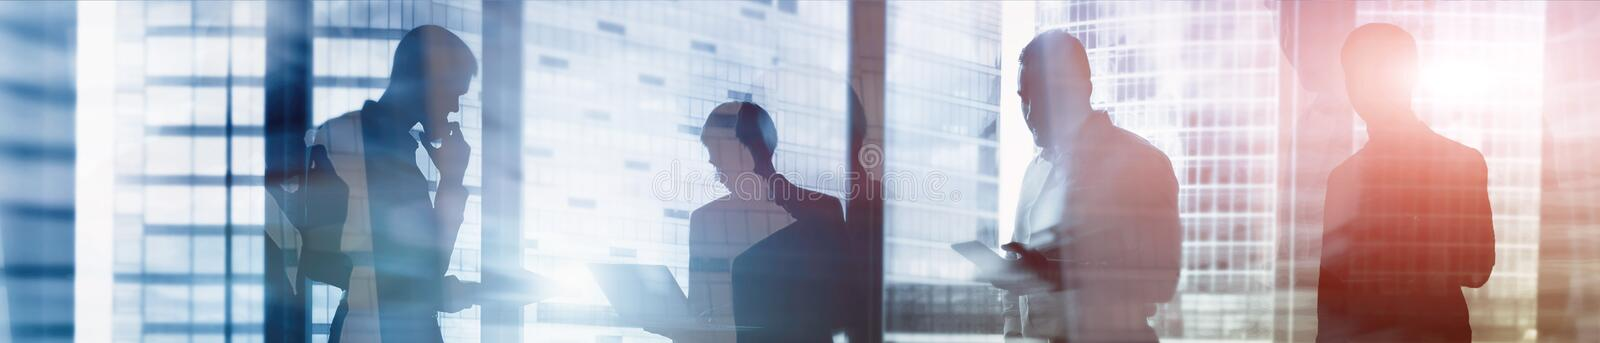 Web site header. Double exposure business people. royalty free stock photo